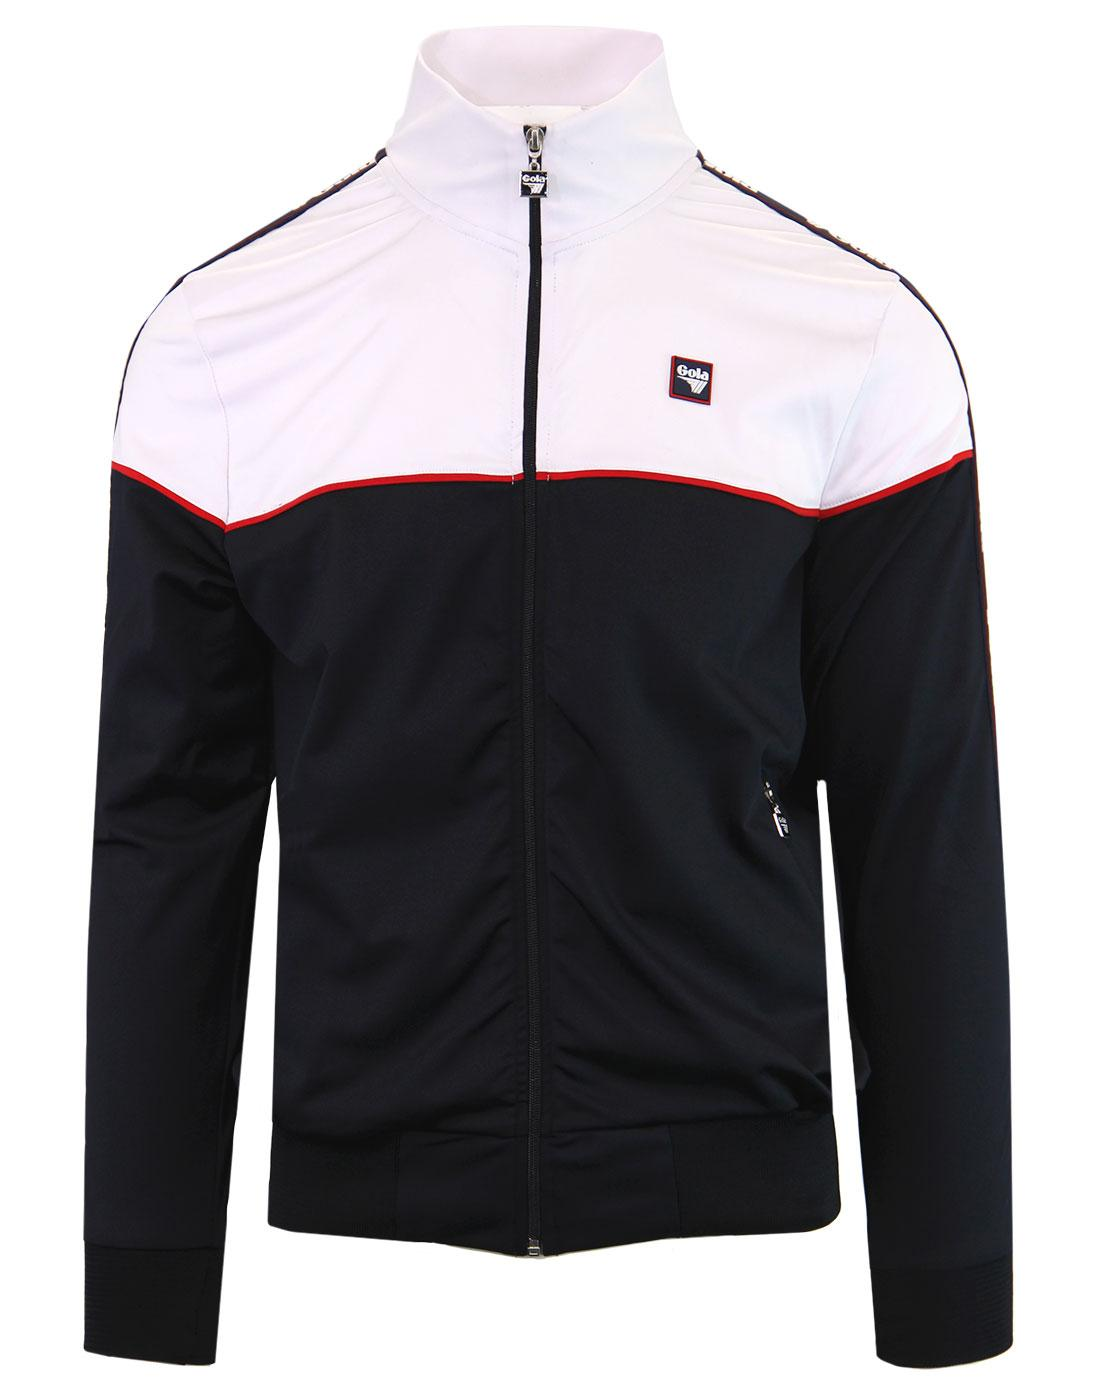 Connor GOLA CLASSICS Retro Panel Piping Track Top